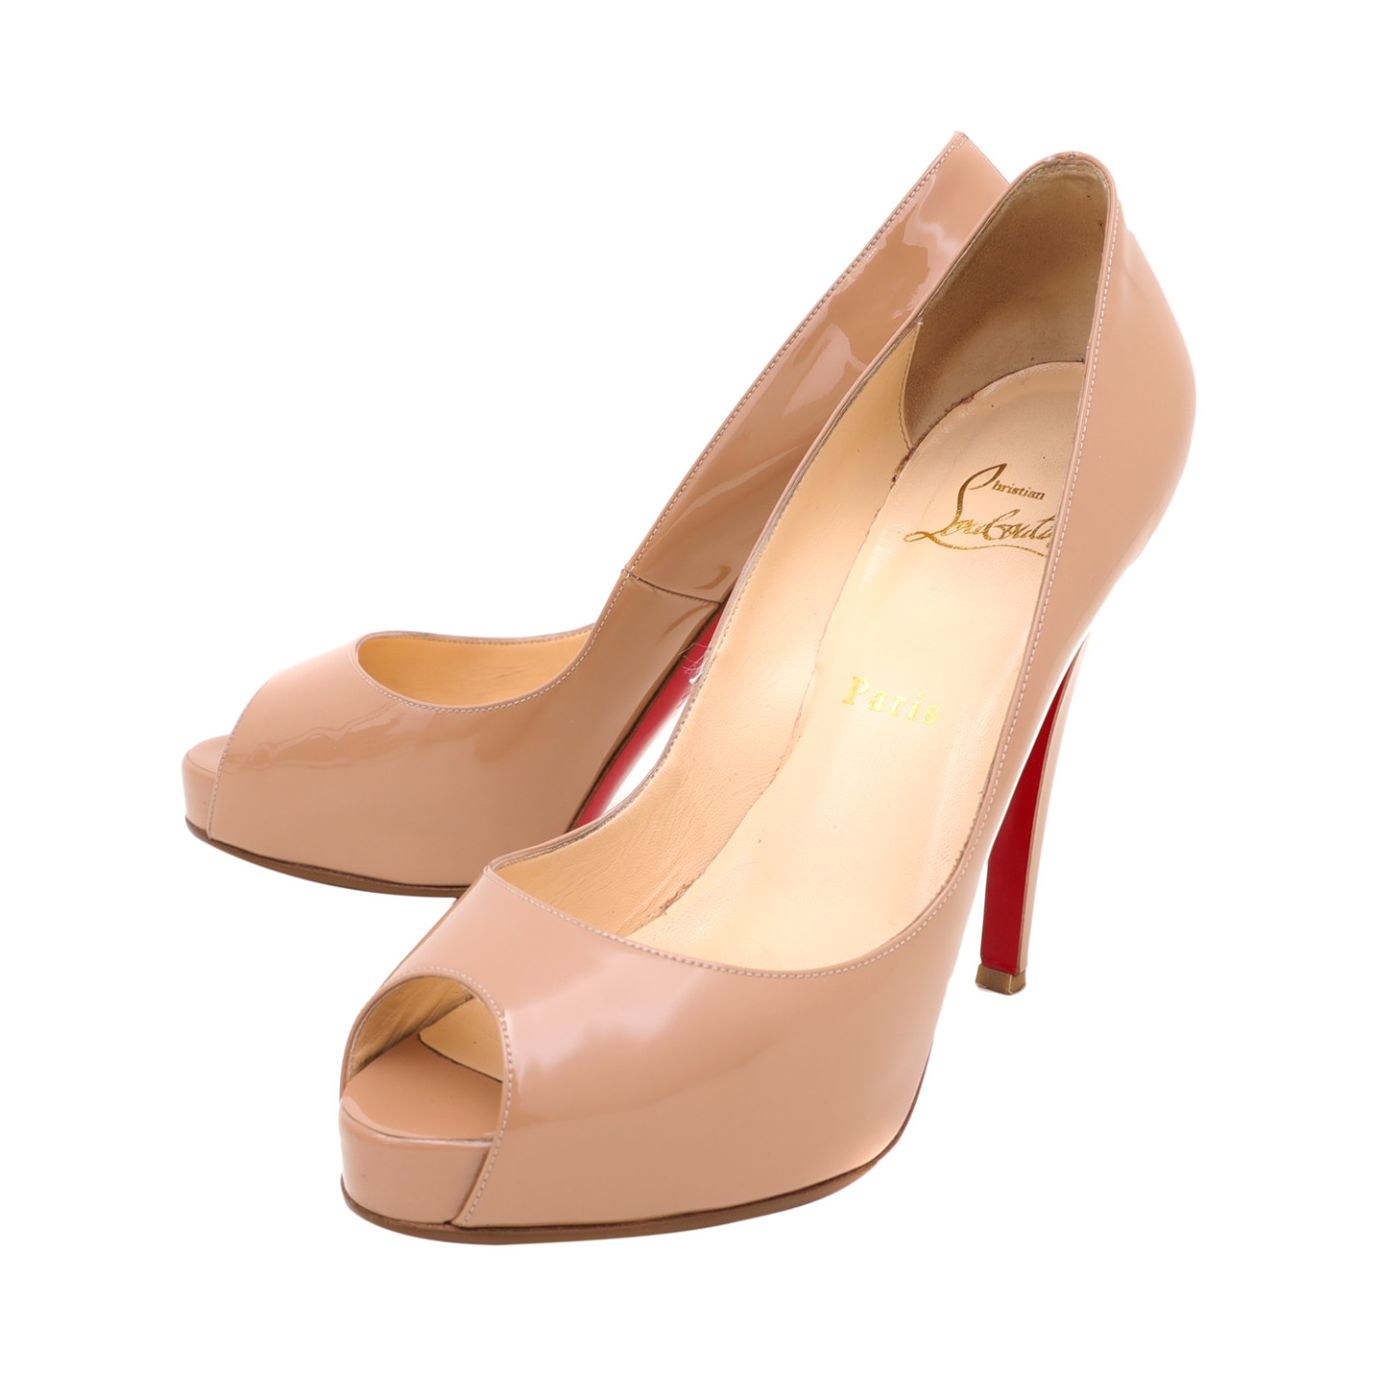 Christian Louboutin Nude Very Prive 120 Pumps 38.5